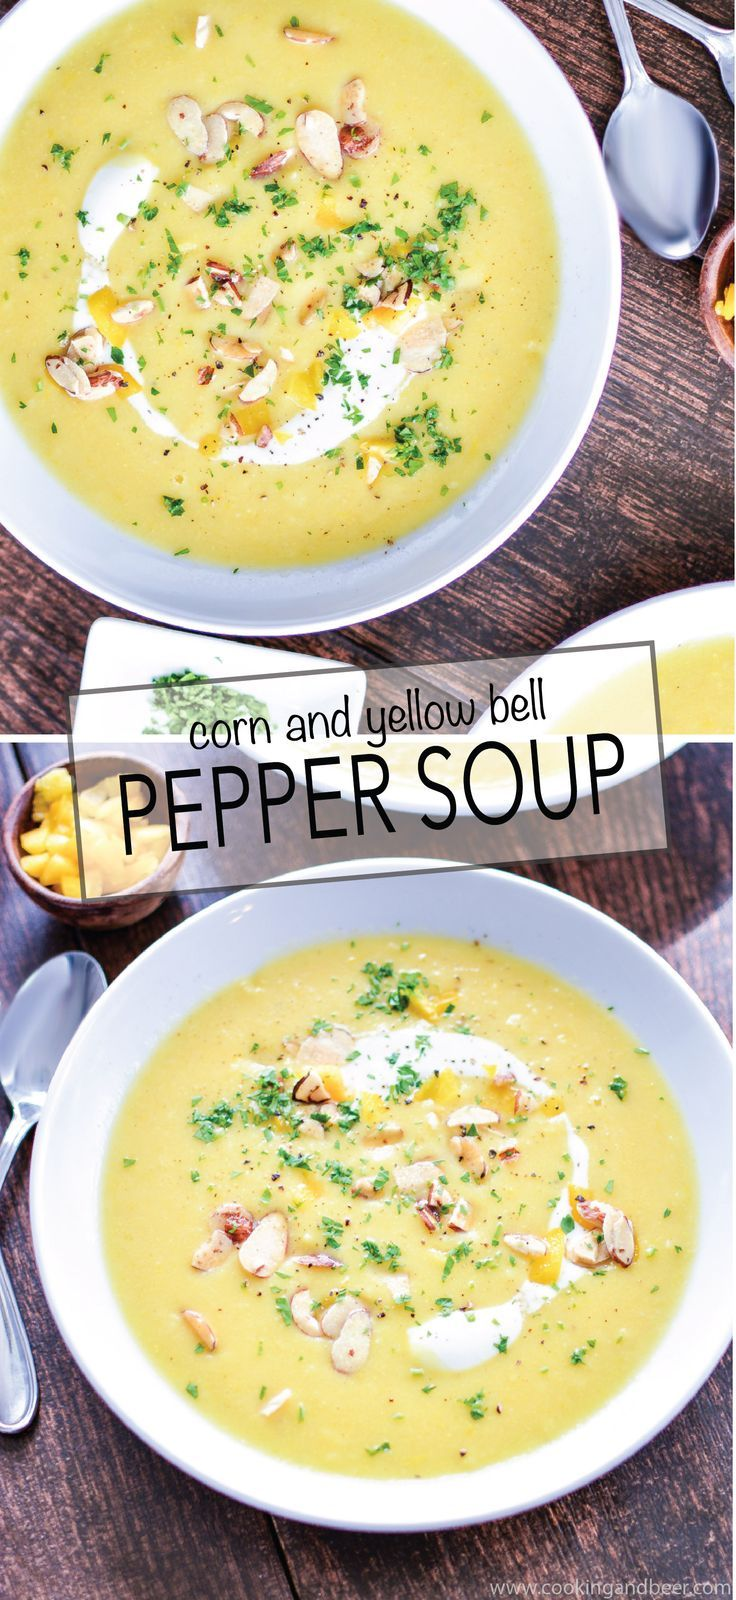 Corn and Yellow Bell Pepper Soup recipe (vegan) is the perfect summertime soup as it highlights fresh produce and delicious ingredients! | www.cookingandbeer.com